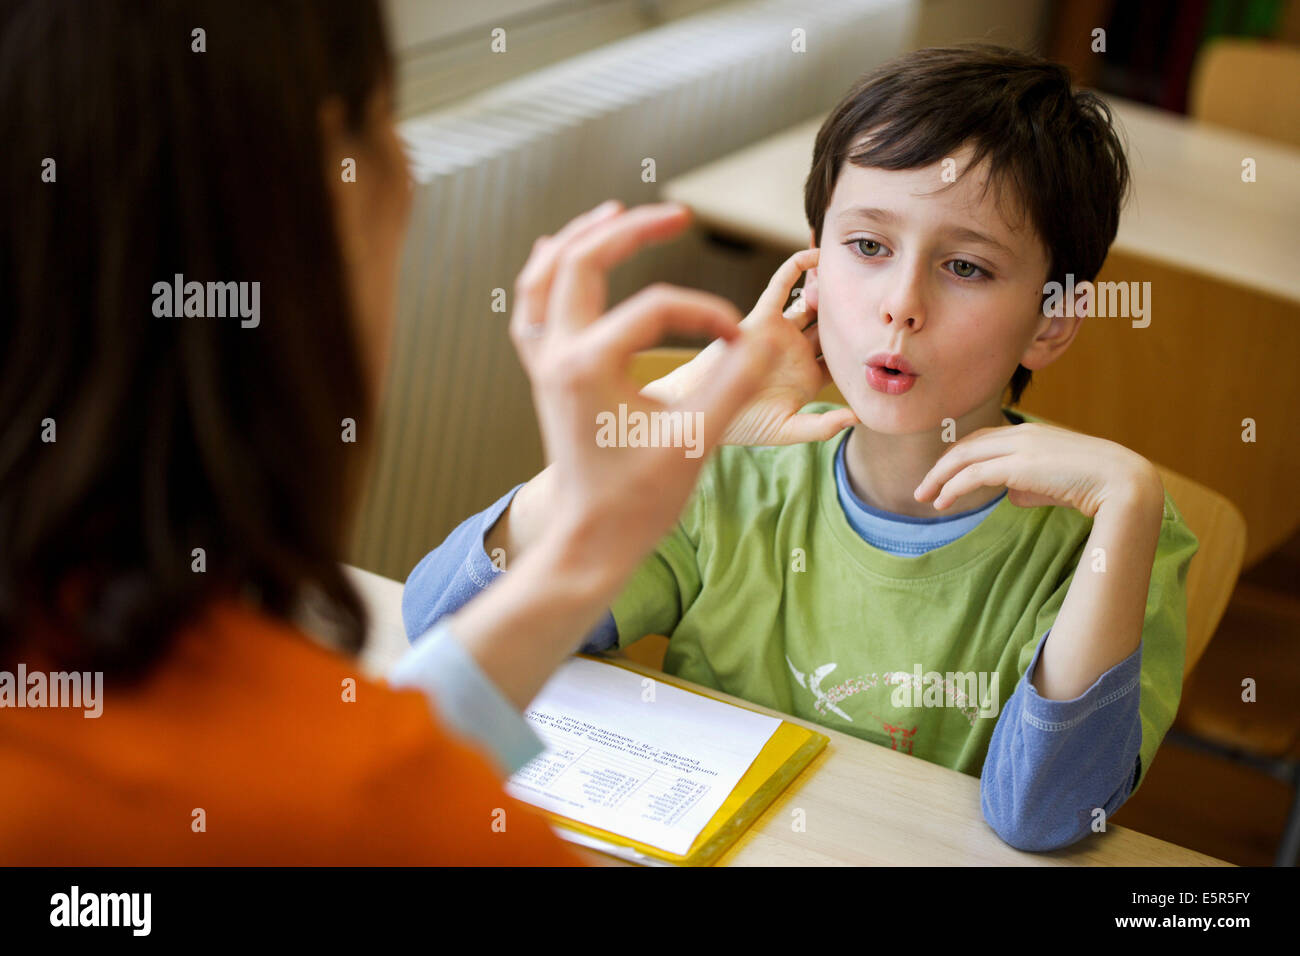 8 year old boy during speech therapy session. - Stock Image